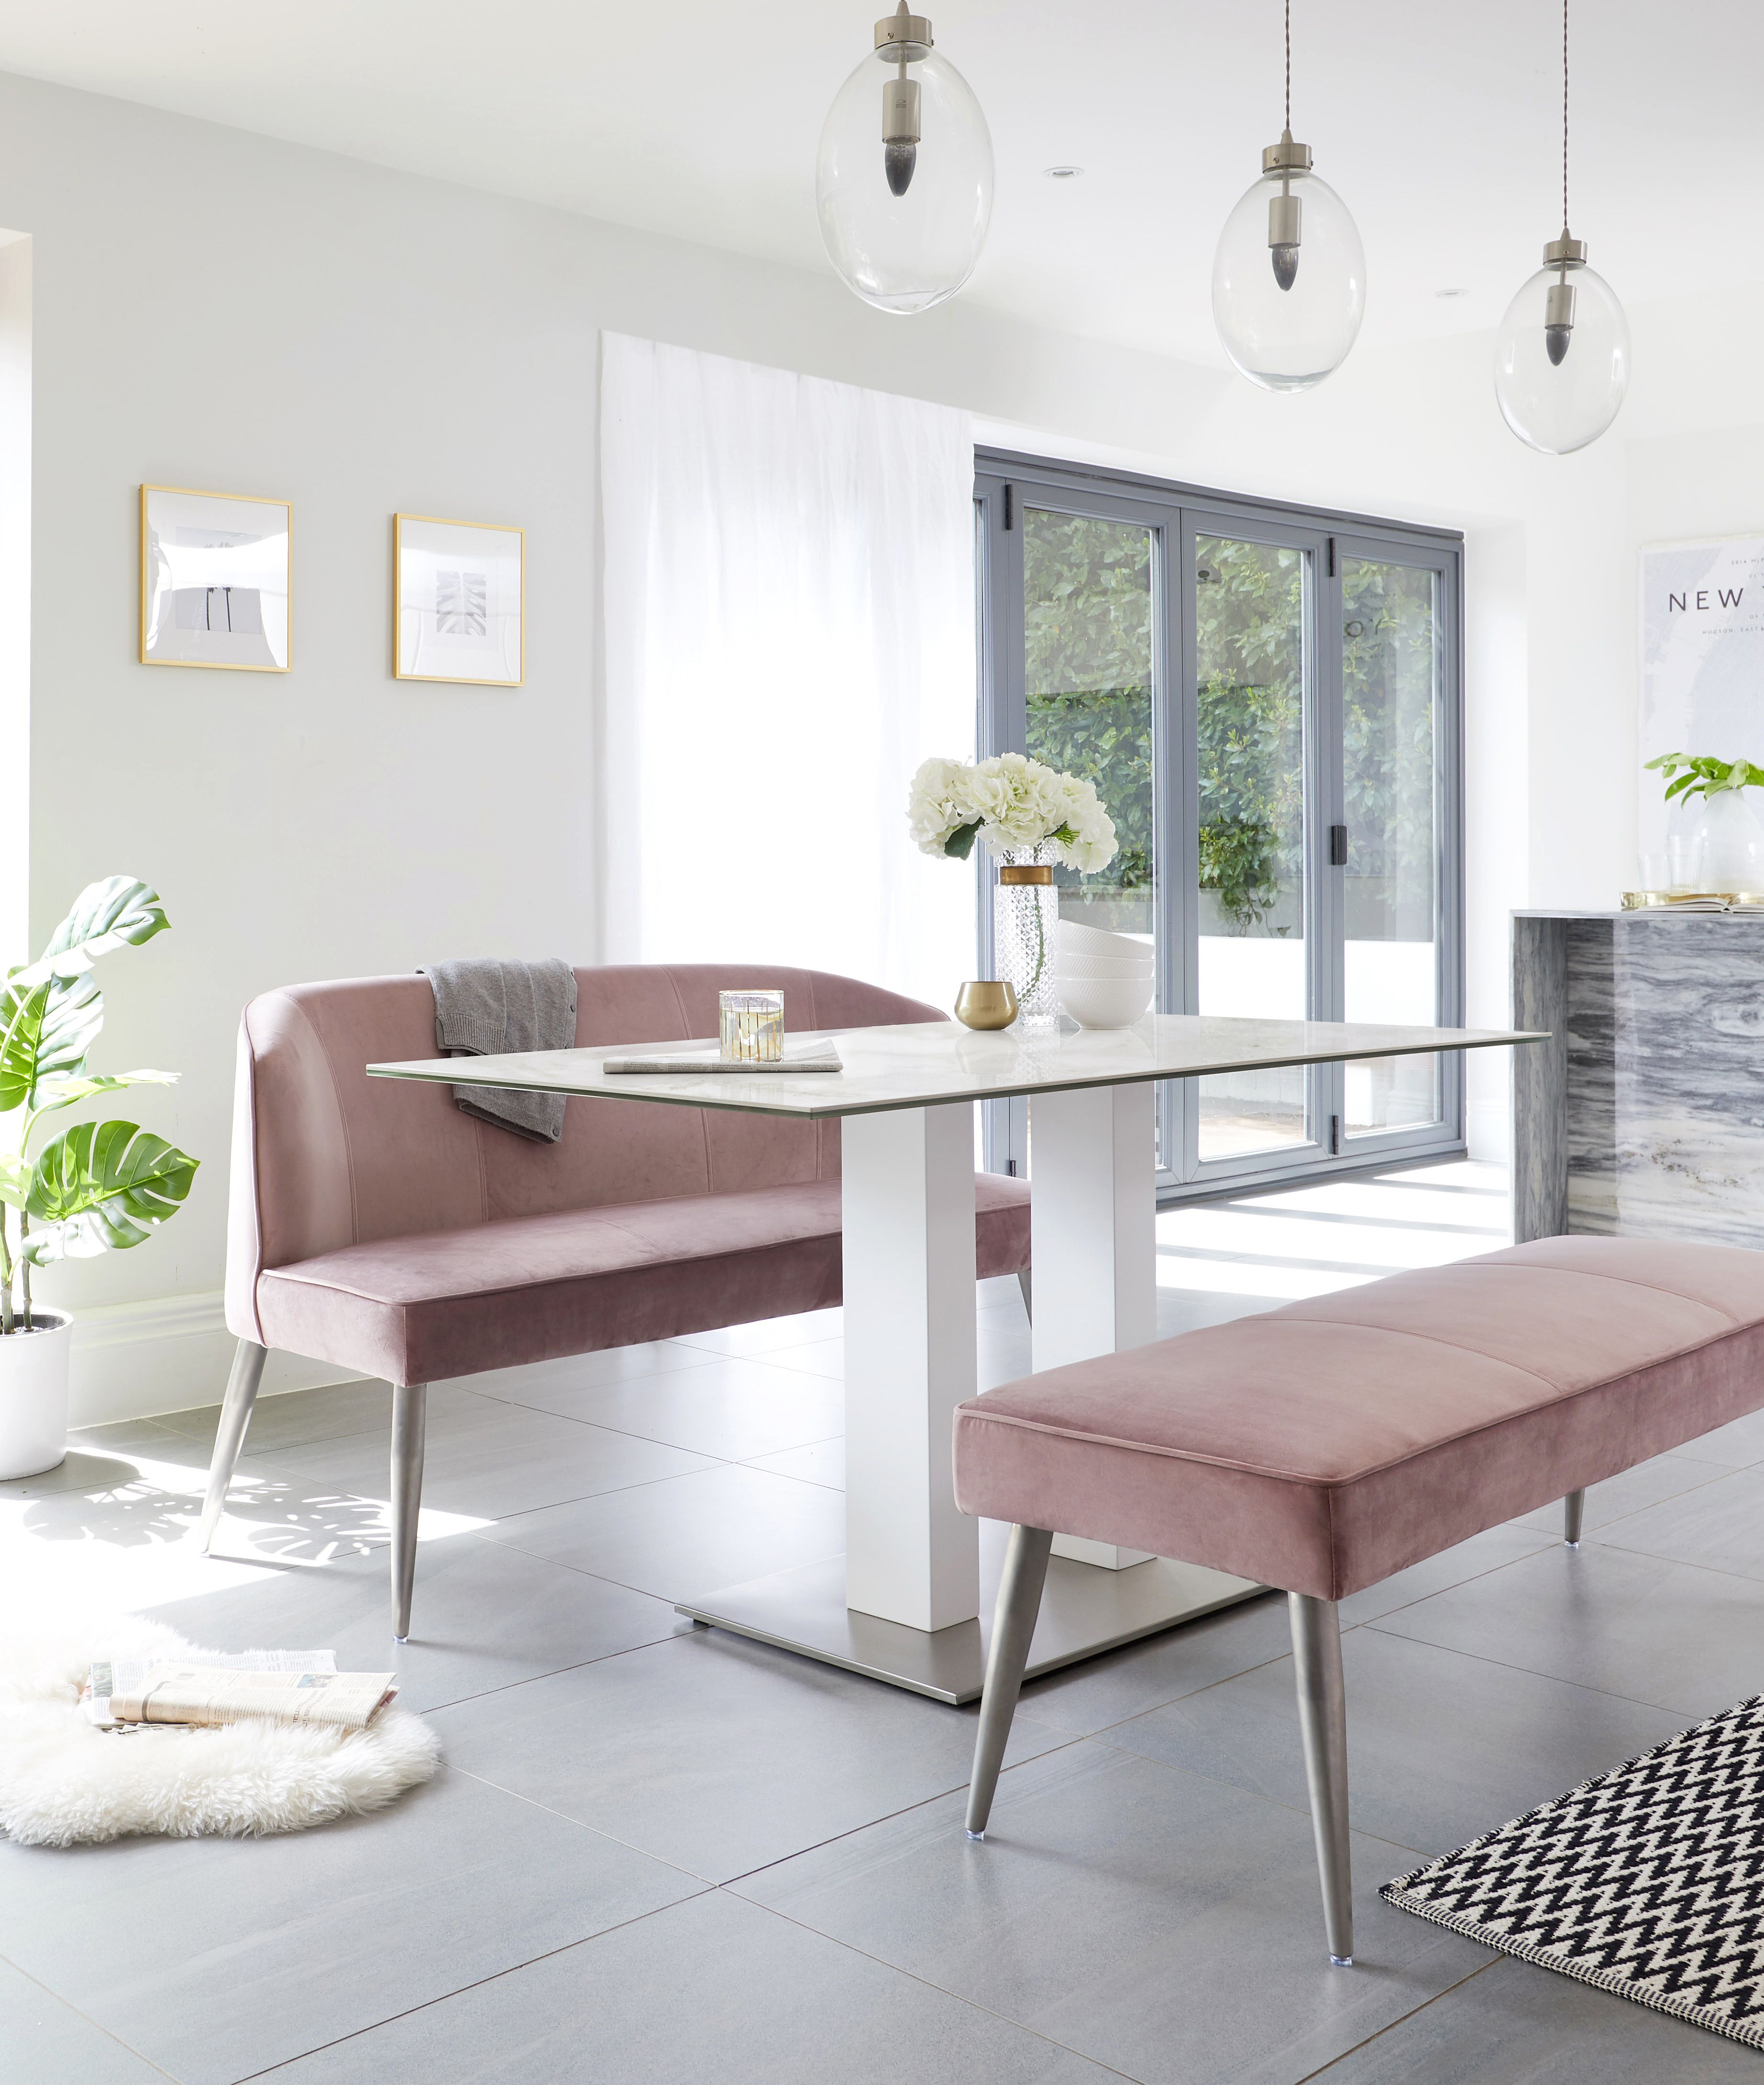 Mia Ceramic Marble Dining Table And Mellow Blush Pink Bench Set In